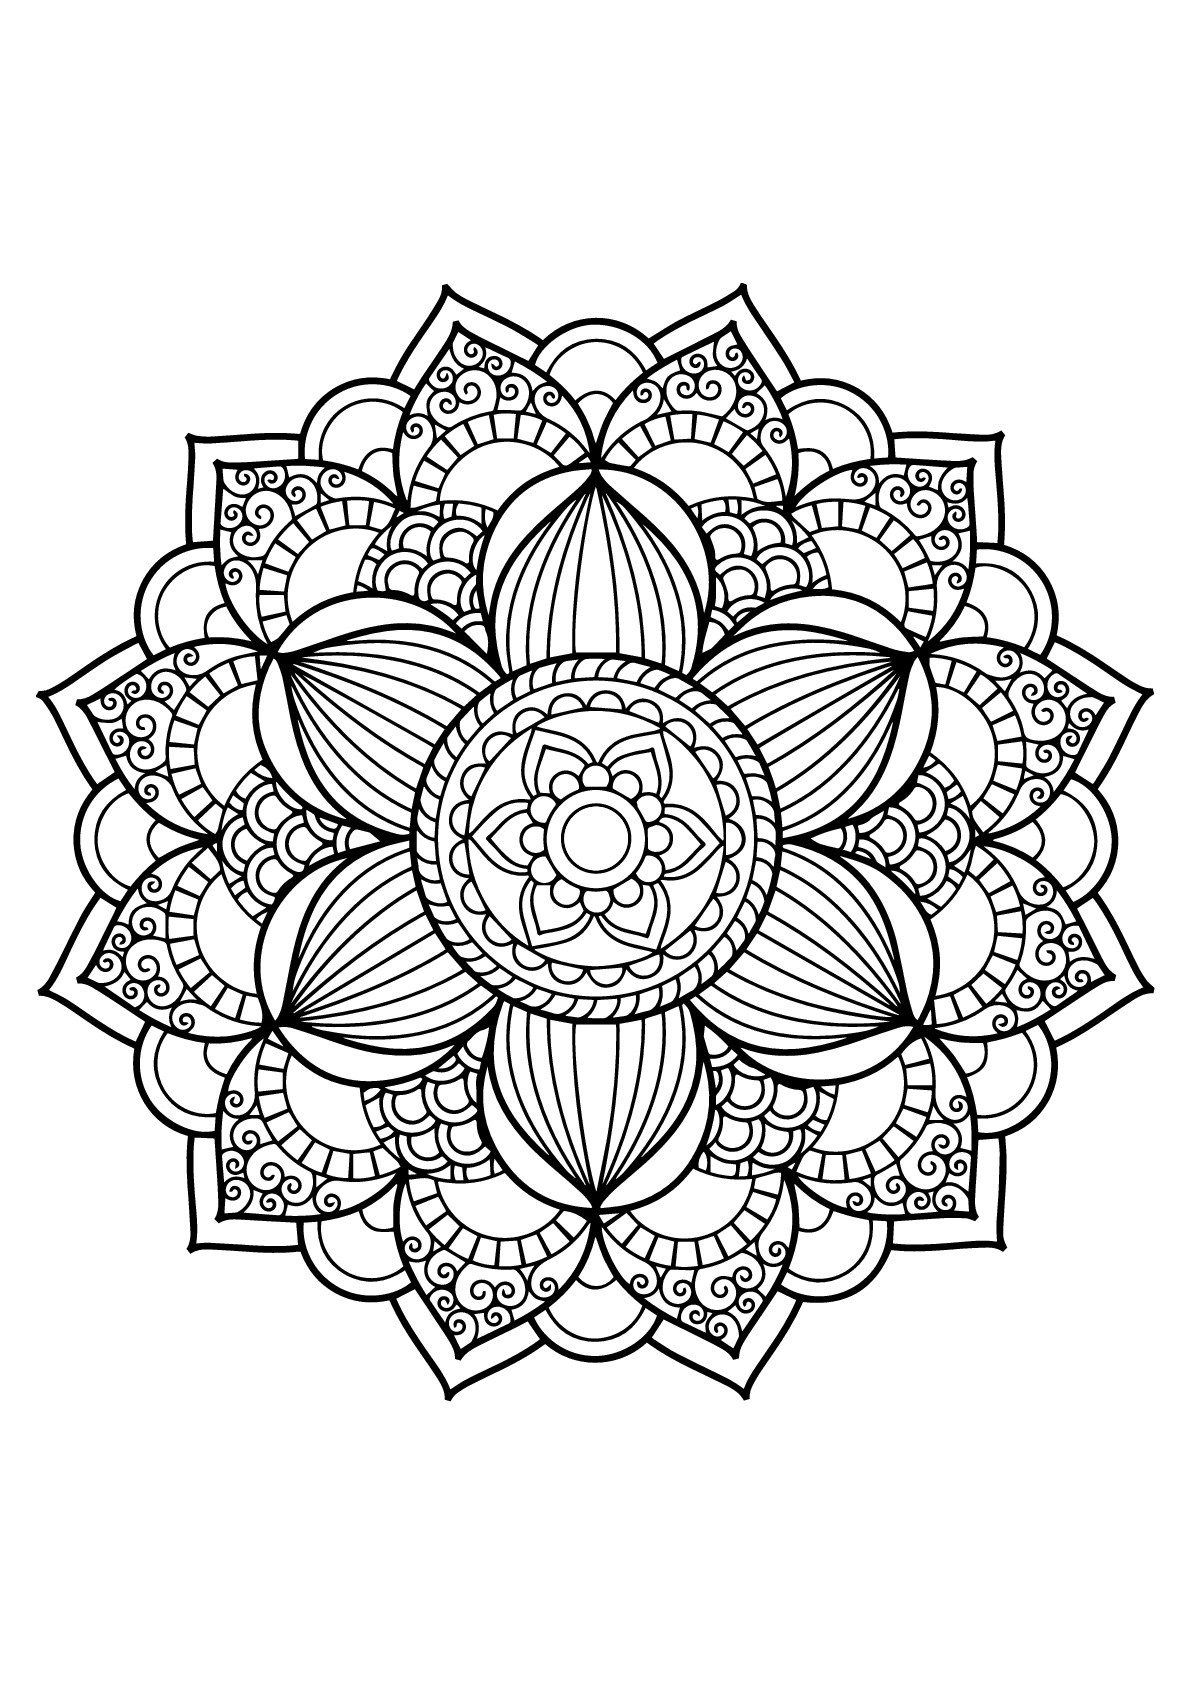 Mandala from free coloring books for adults 17 - M&alas ...   coloring books for adults mandala